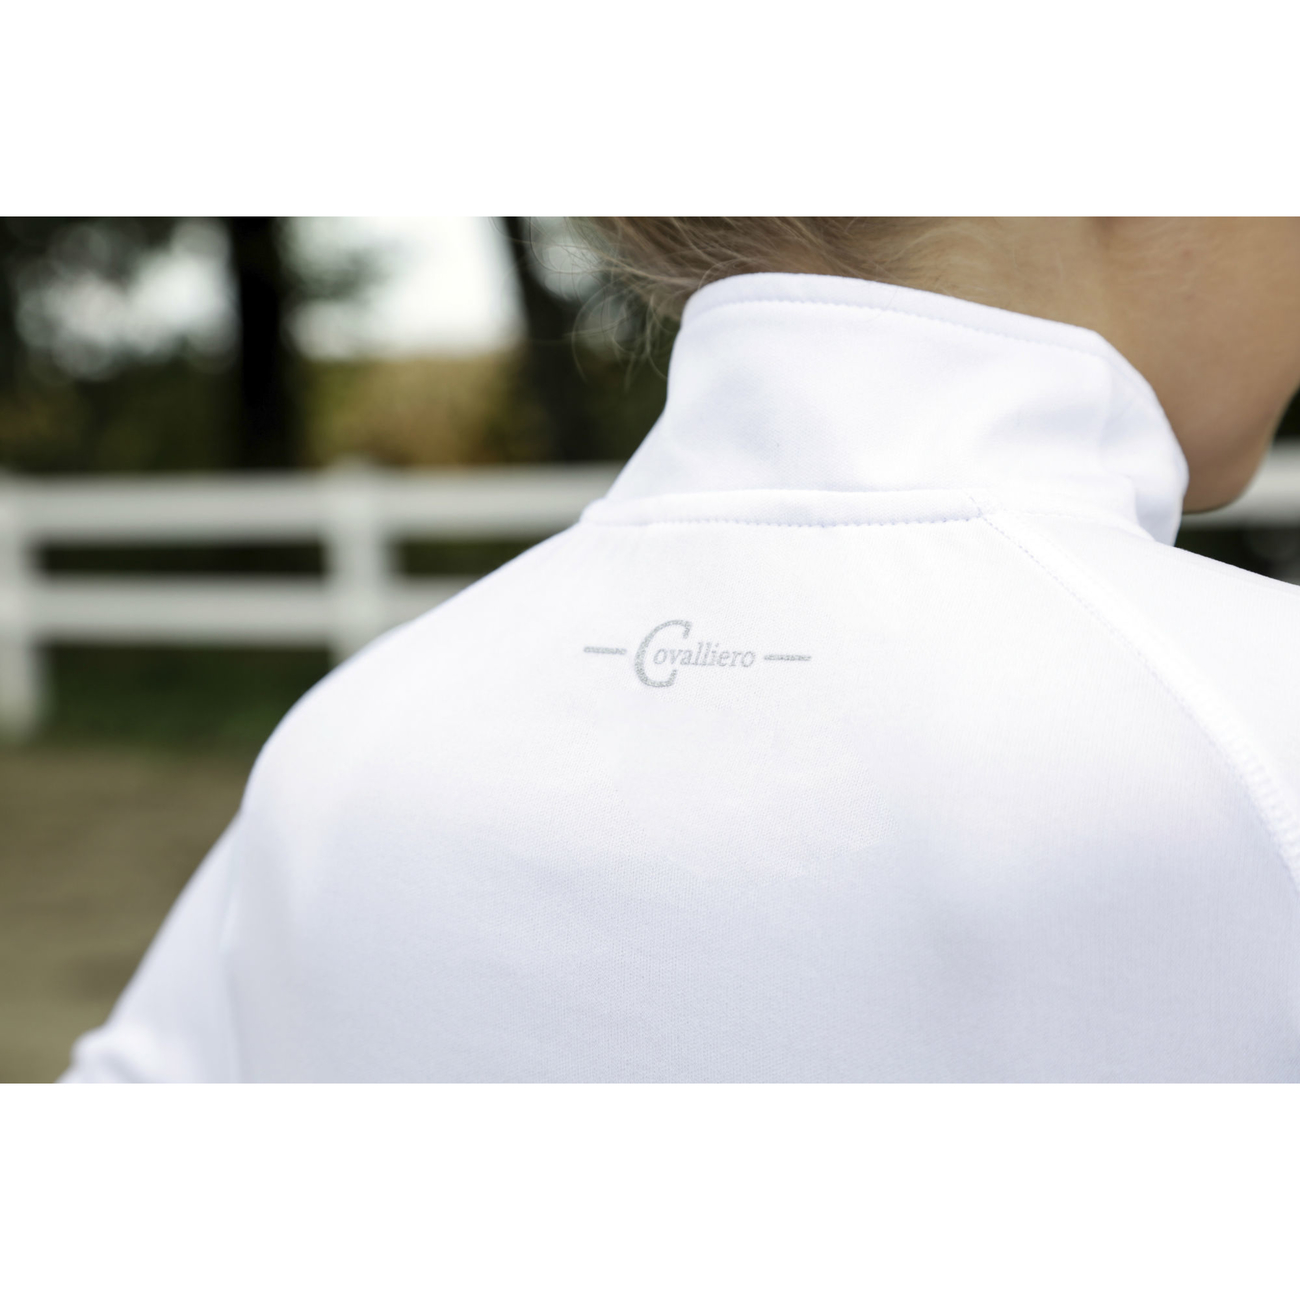 Covalliero Turniershirt Competition Shirt Premia white, Bild 3